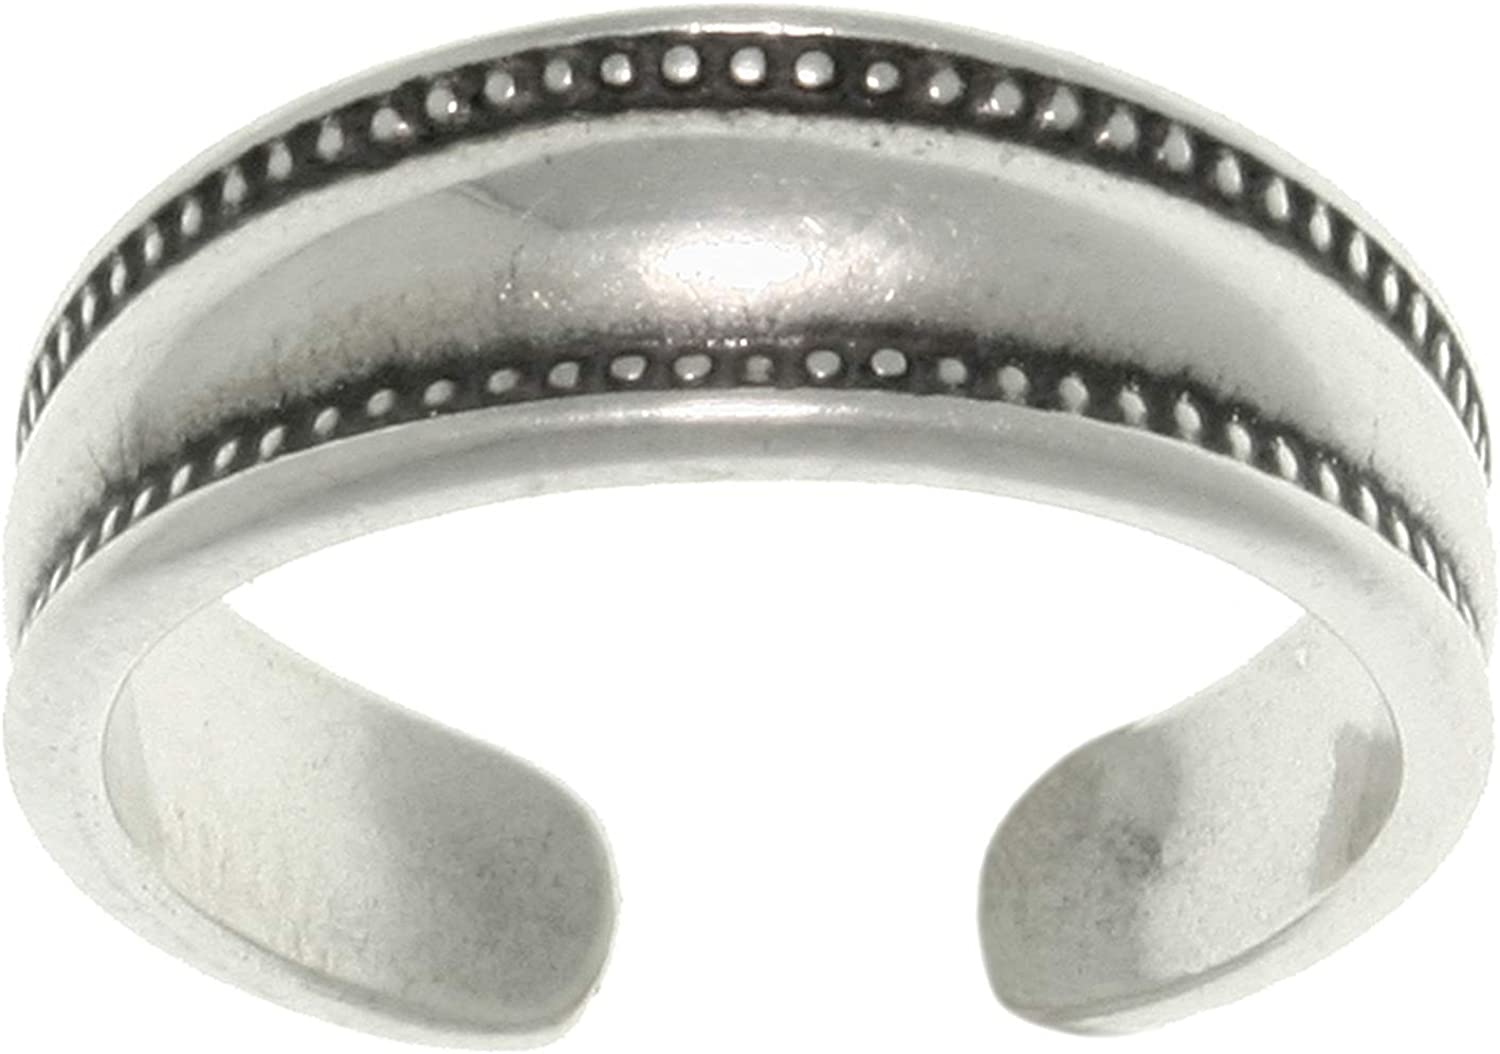 Product Jewelry Trends Bali Edge Wedding Adjustable- Style Ring Many popular brands Band Toe